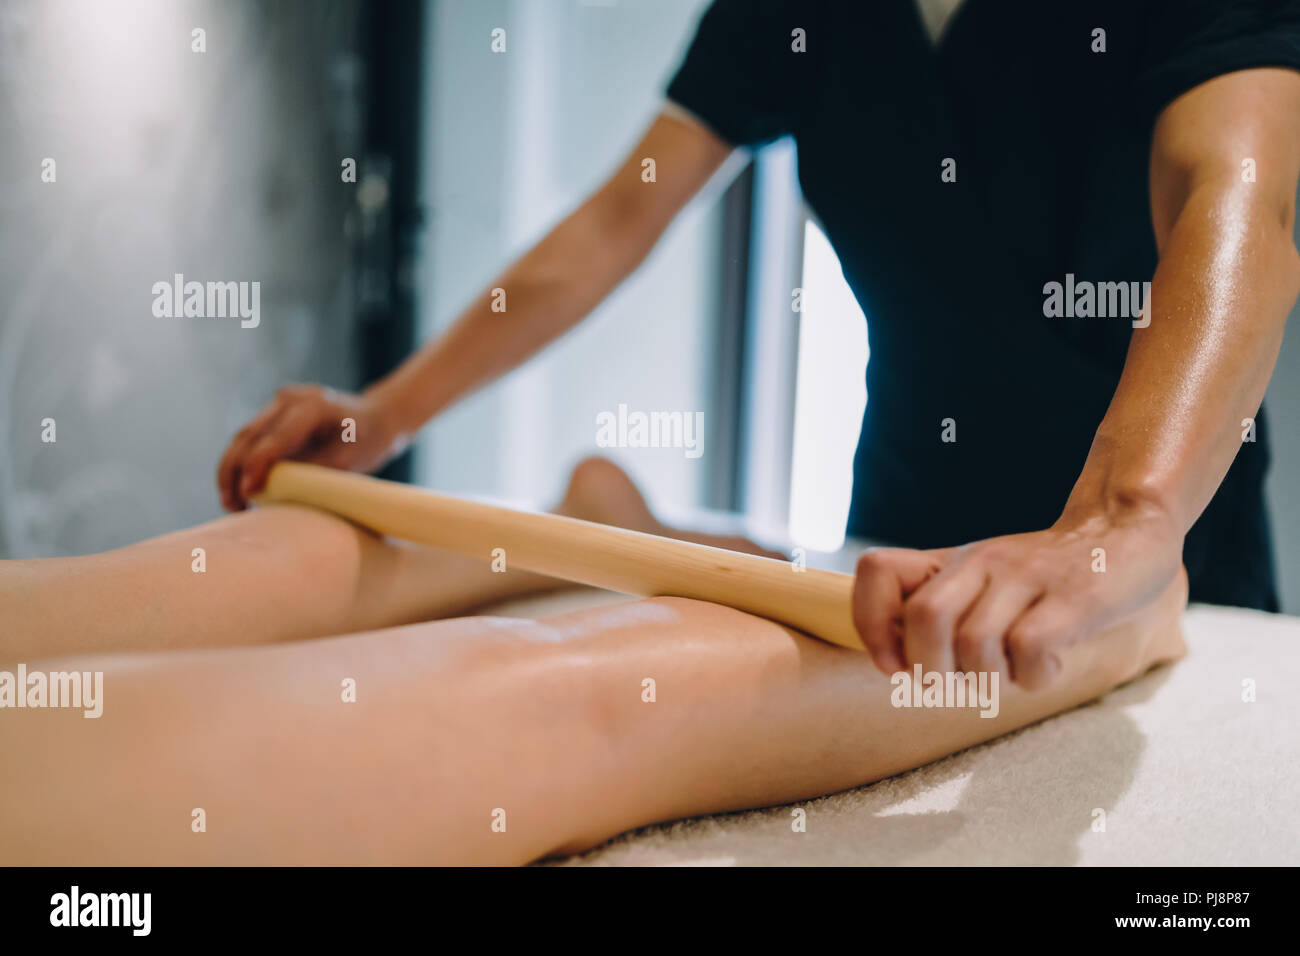 Masseur massaging masseuse during therapeutic tretment - Stock Image